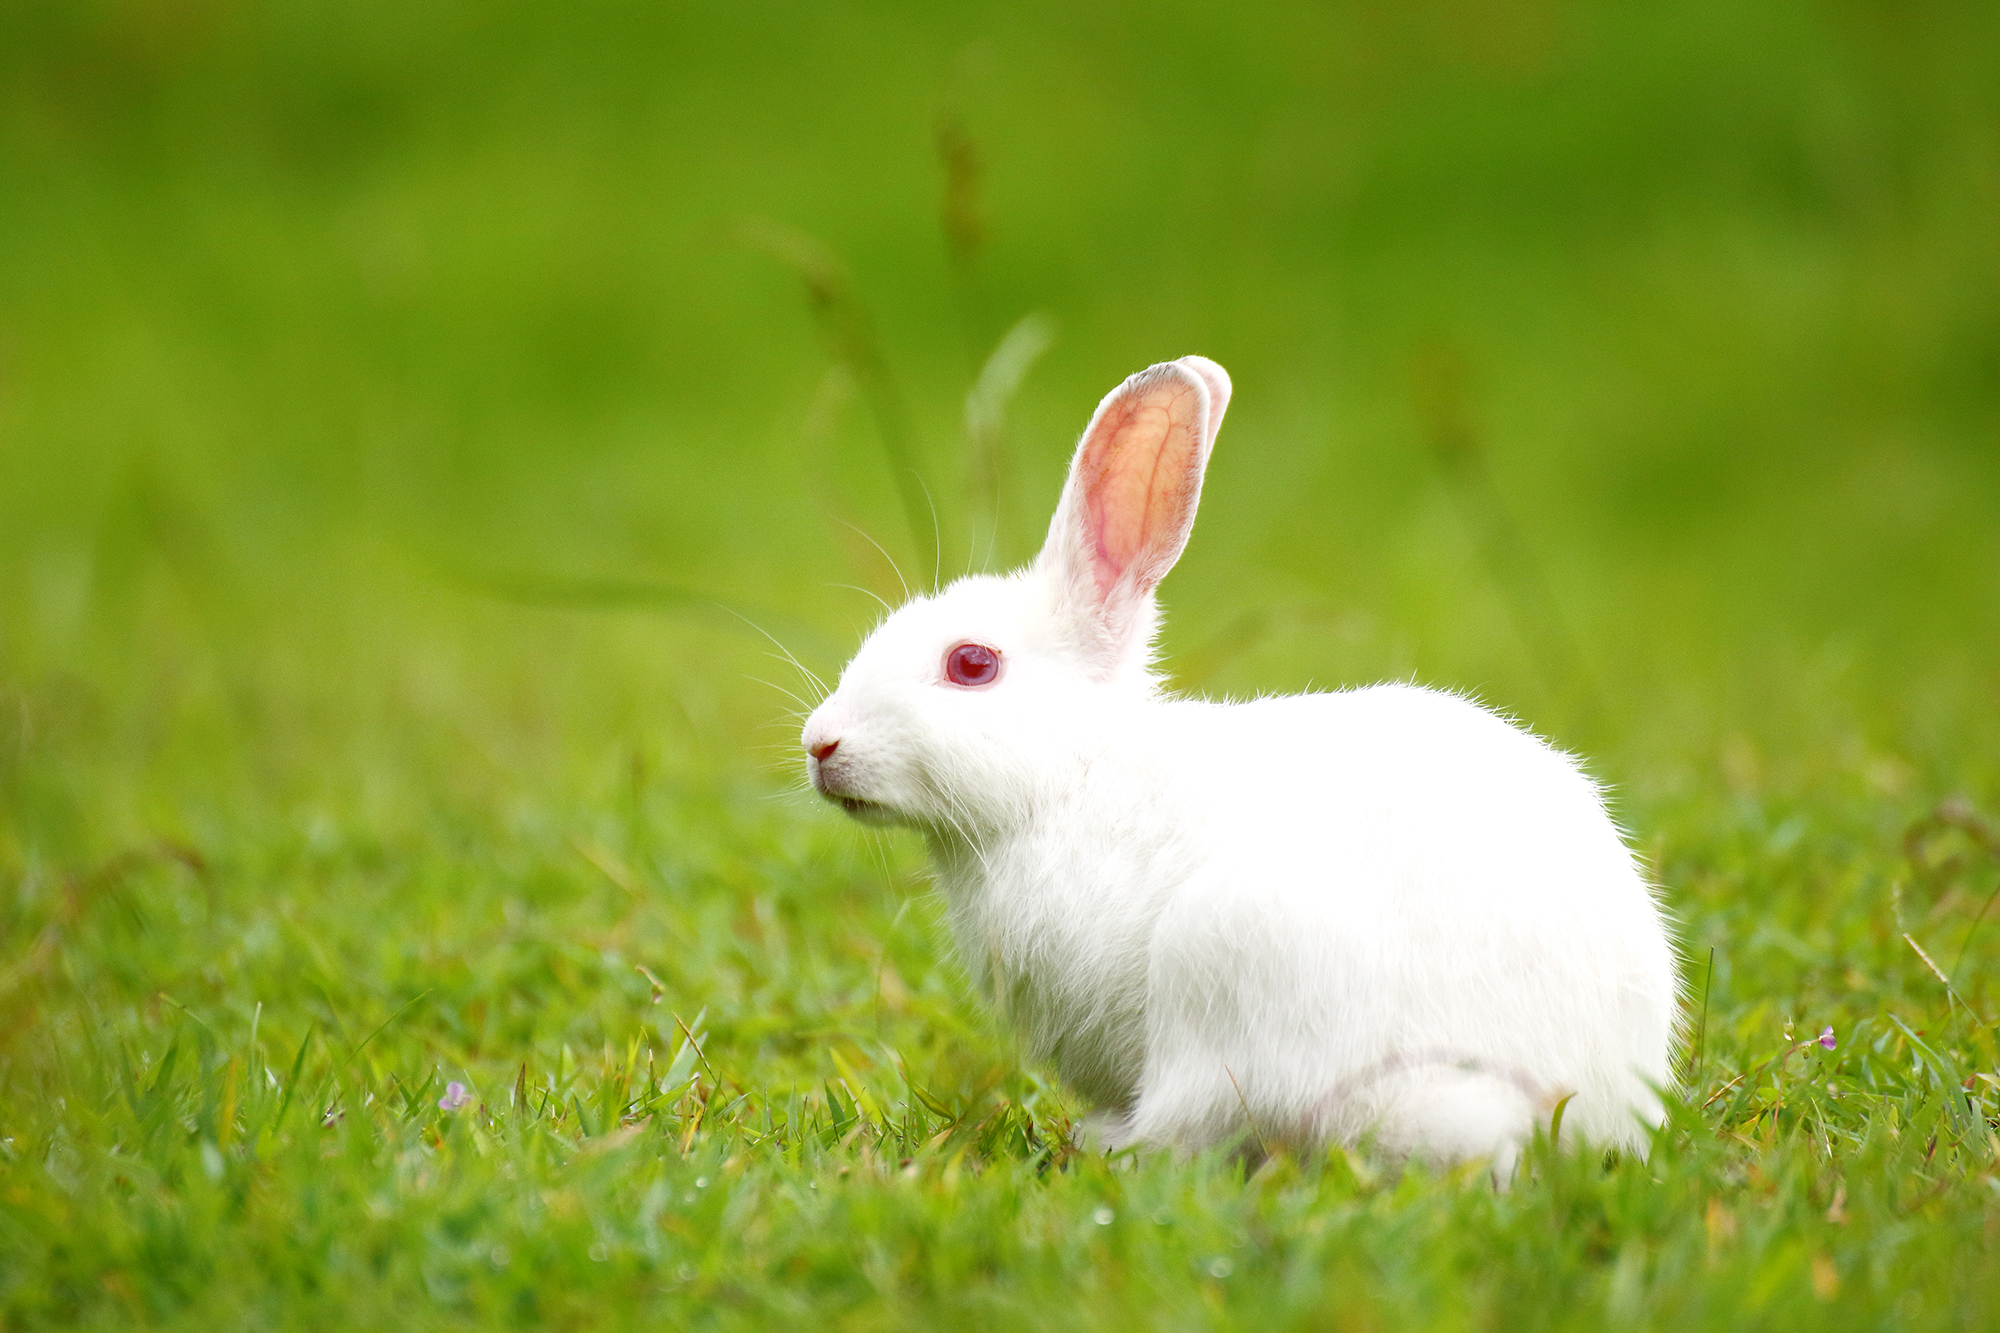 The Reason Why Rabbits Show Up In Horror Movies Like Us